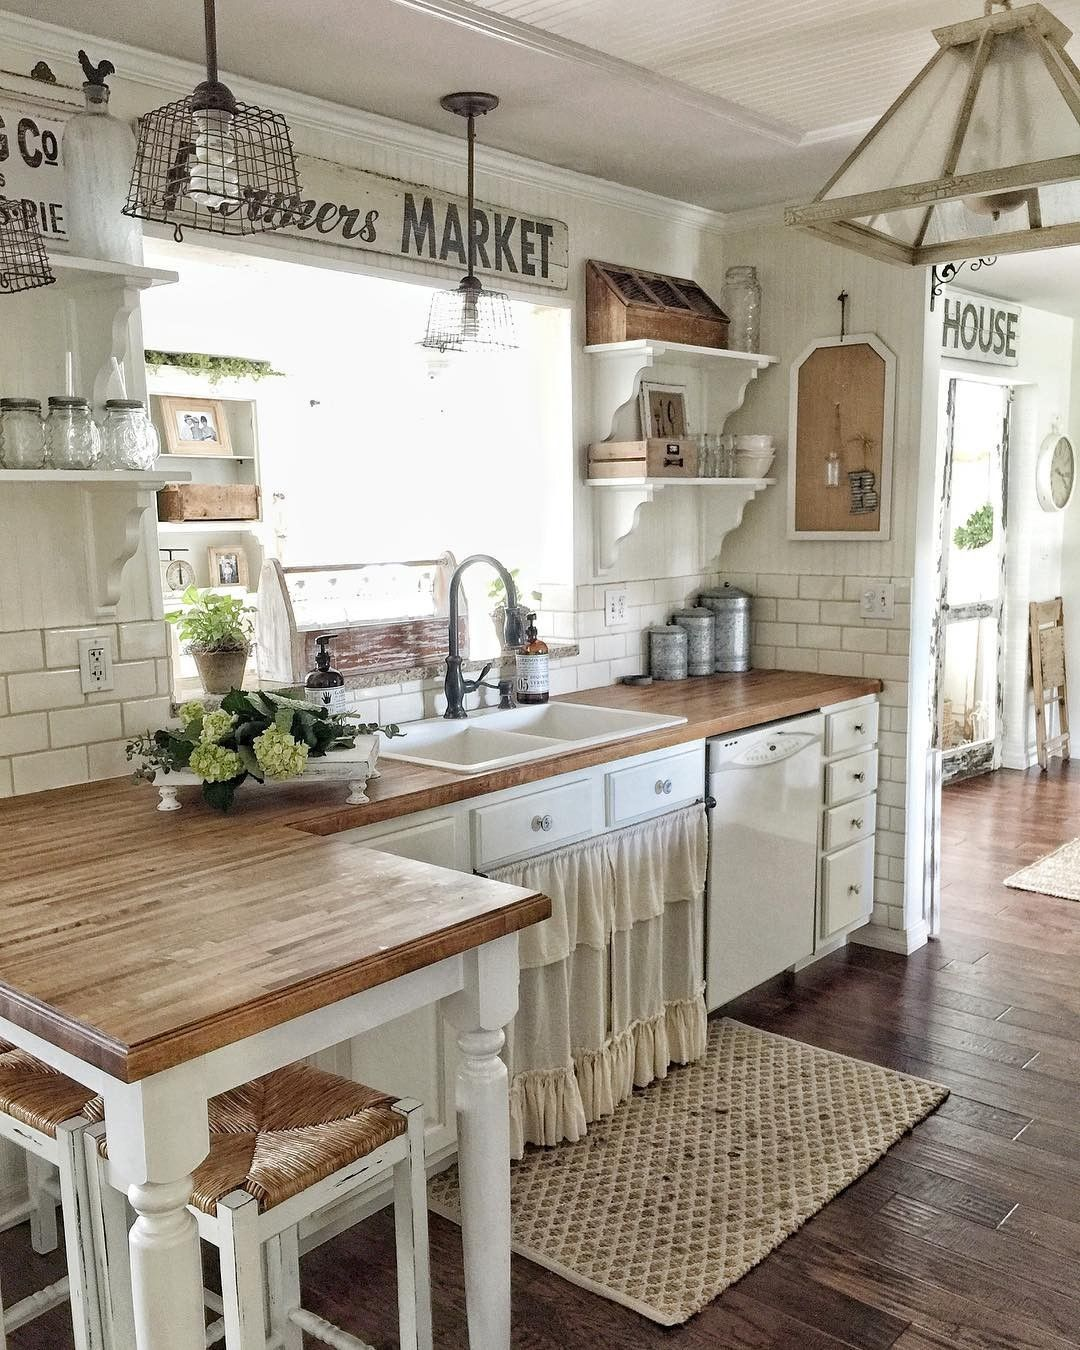 Low Budget Kitchen Cabinets: 20 Farmhouse Kitchen Ideas On A Budget For 2018